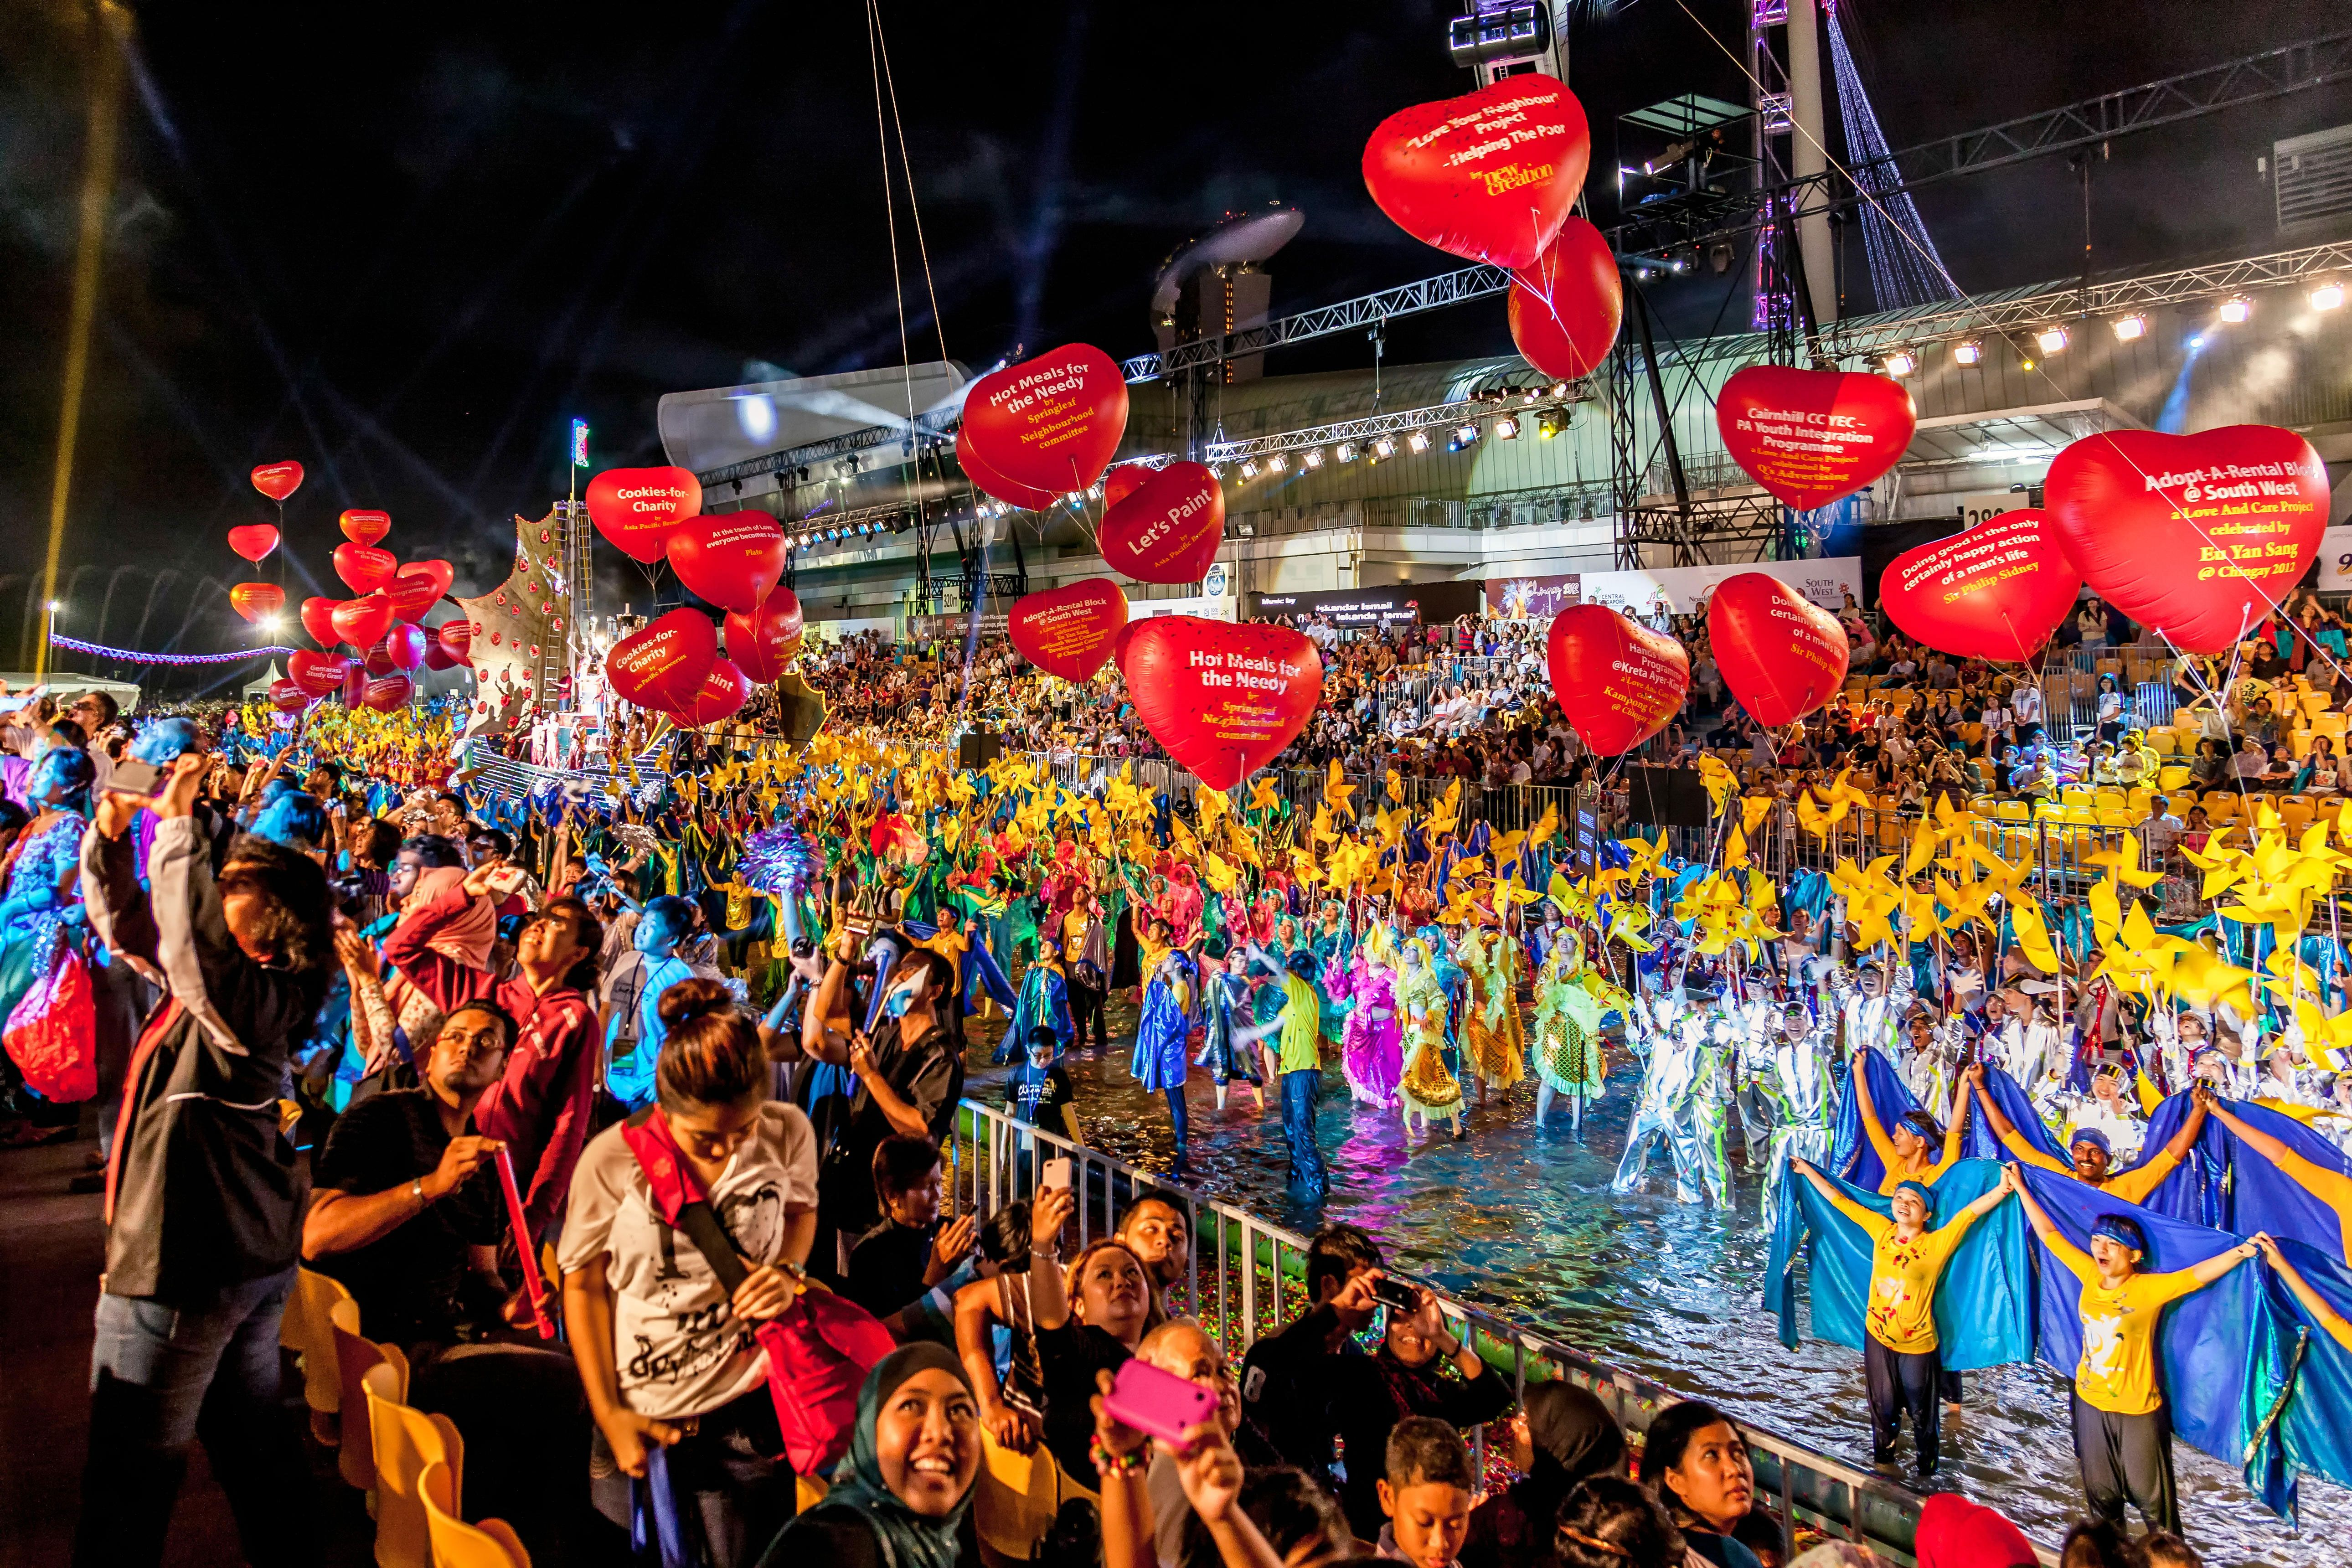 Celebrate Chinese New Year In Style At The Chingay Parade In